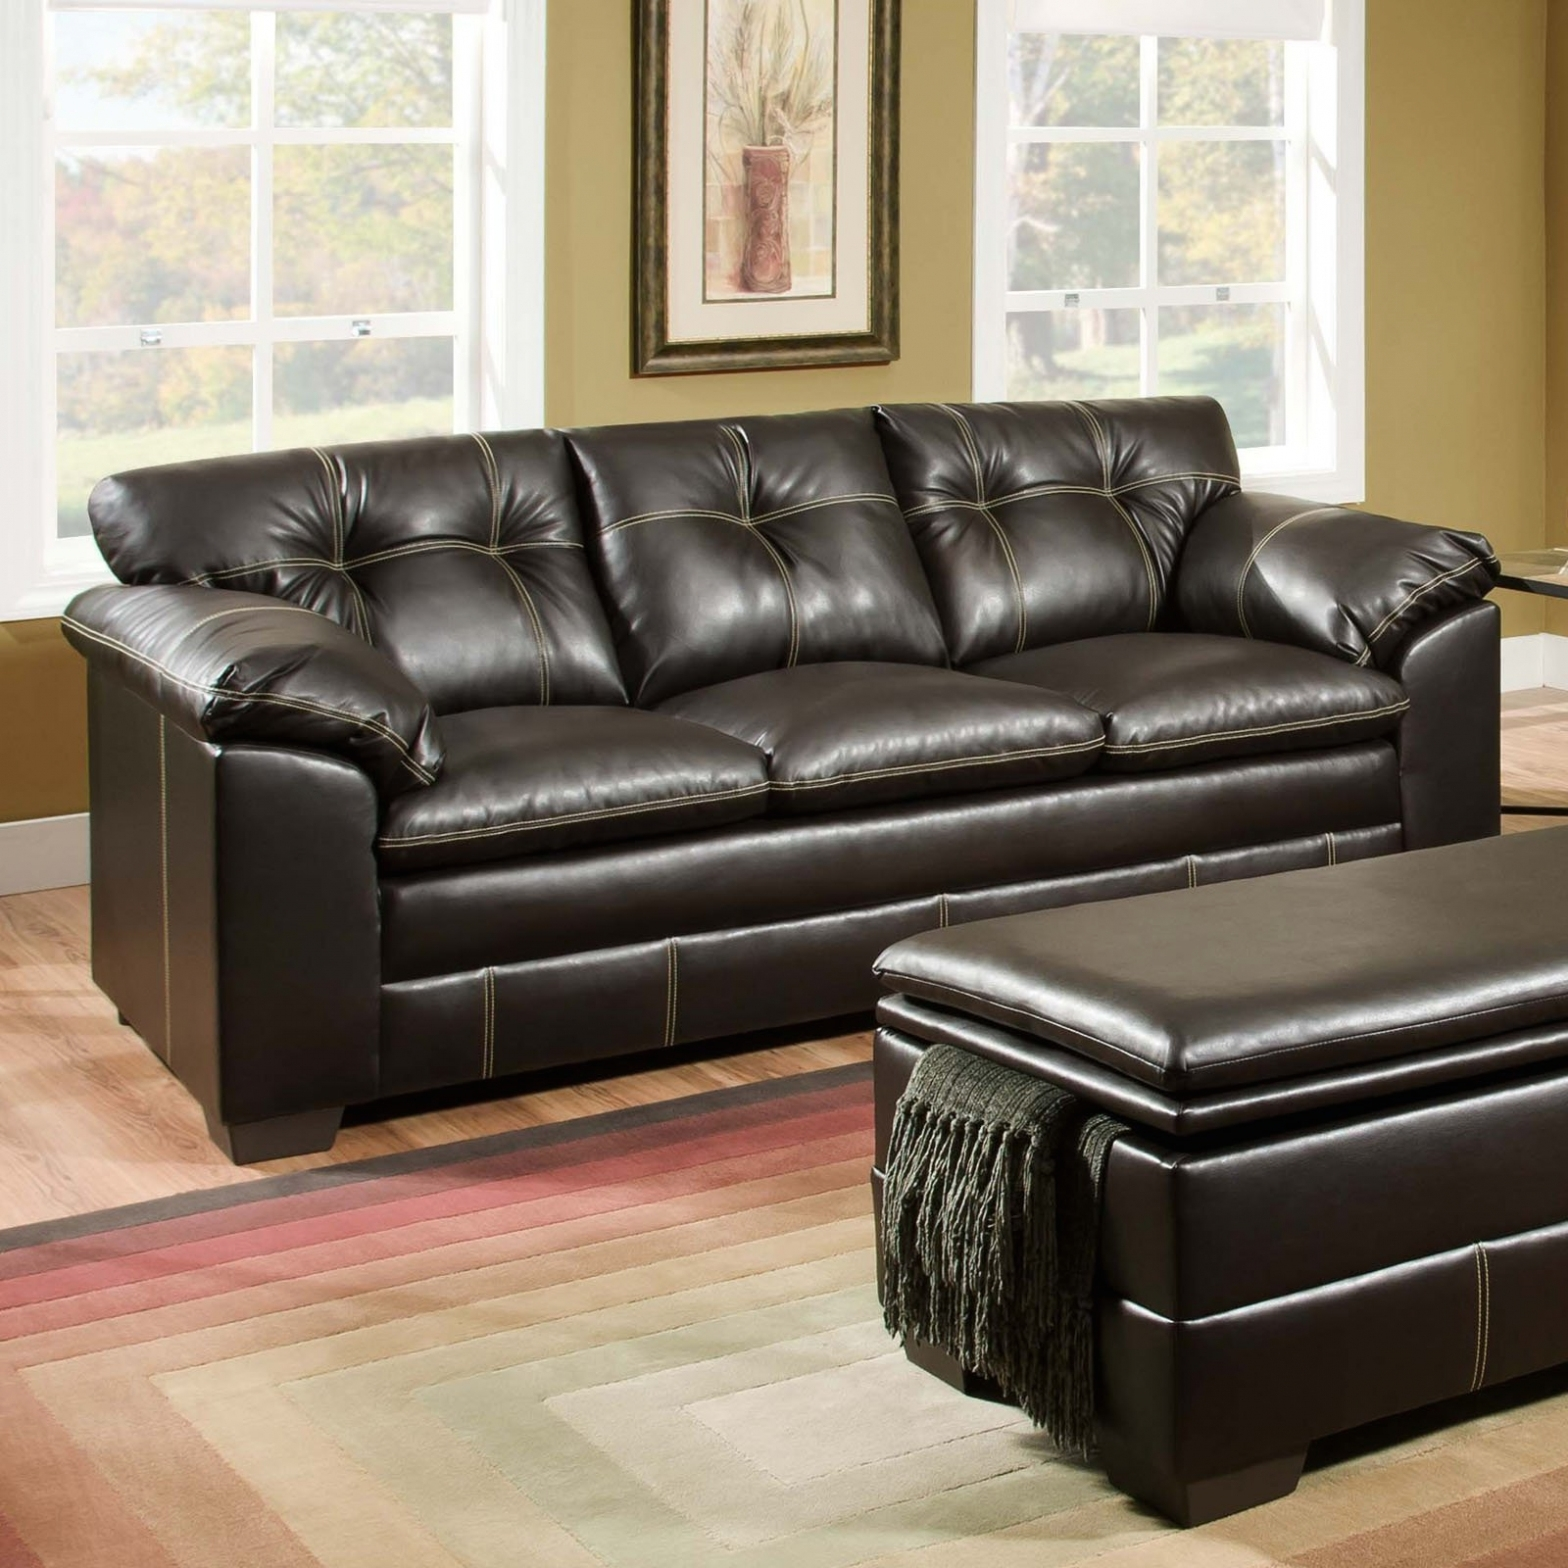 Popular Furniture: Sofas : Fabulous Leather Loveseat Recliner Sectional Throughout Sectional Sofas At Big Lots (View 11 of 20)